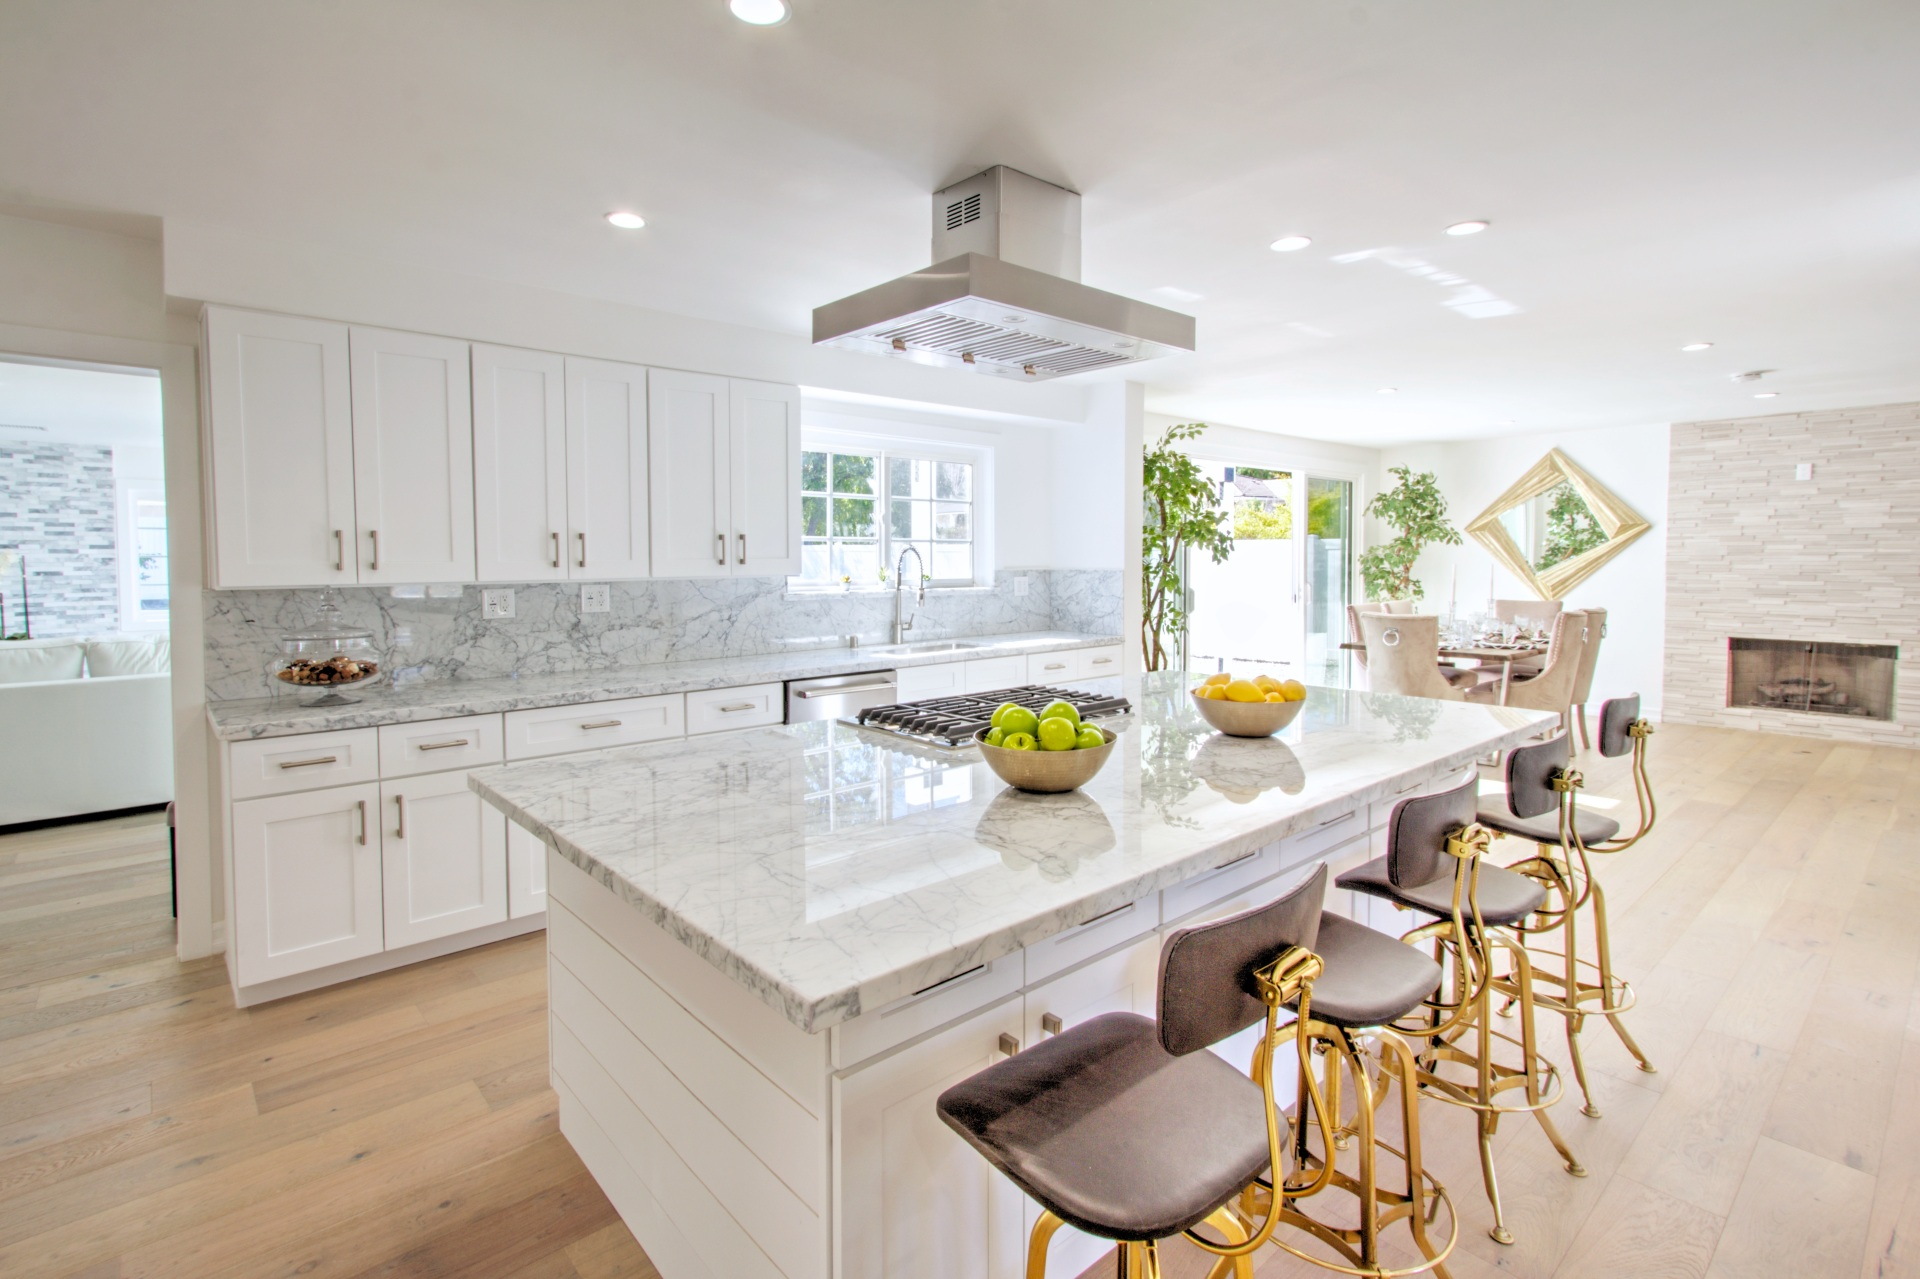 HOW TO AVOID FOUR KITCHEN REMODELING MISTAKES